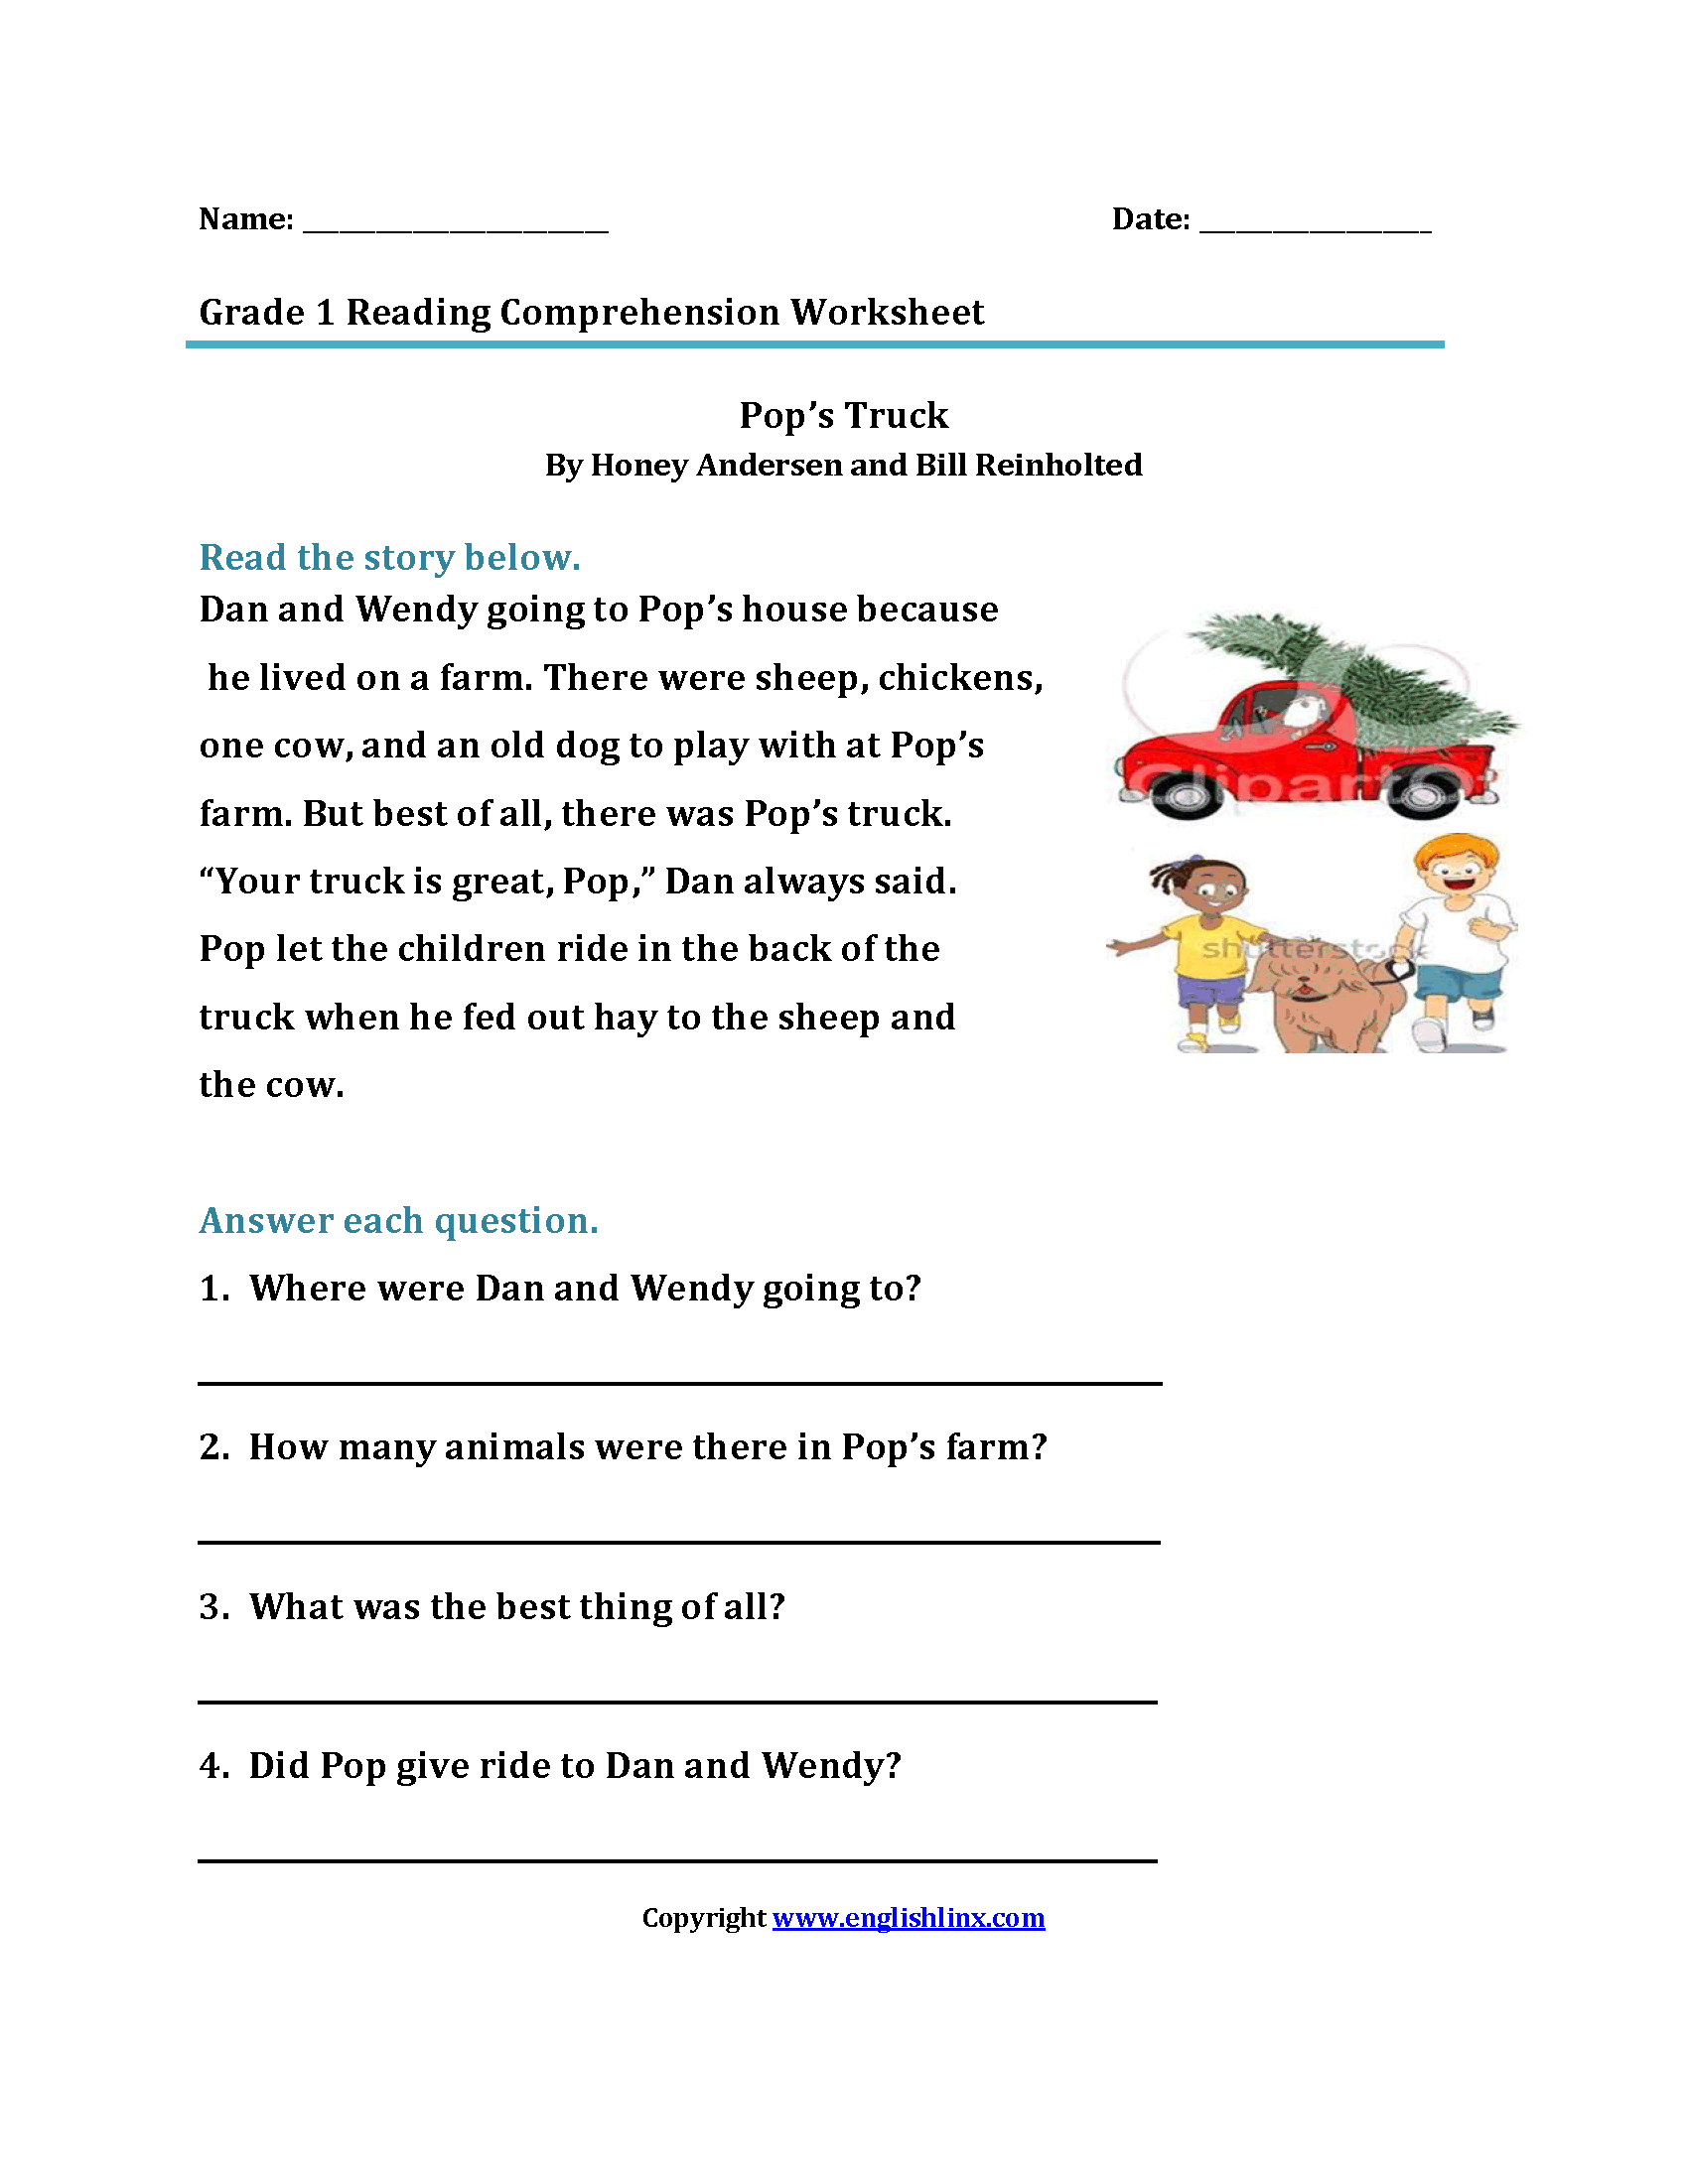 Pop's Truck First Grade Reading Worksheets